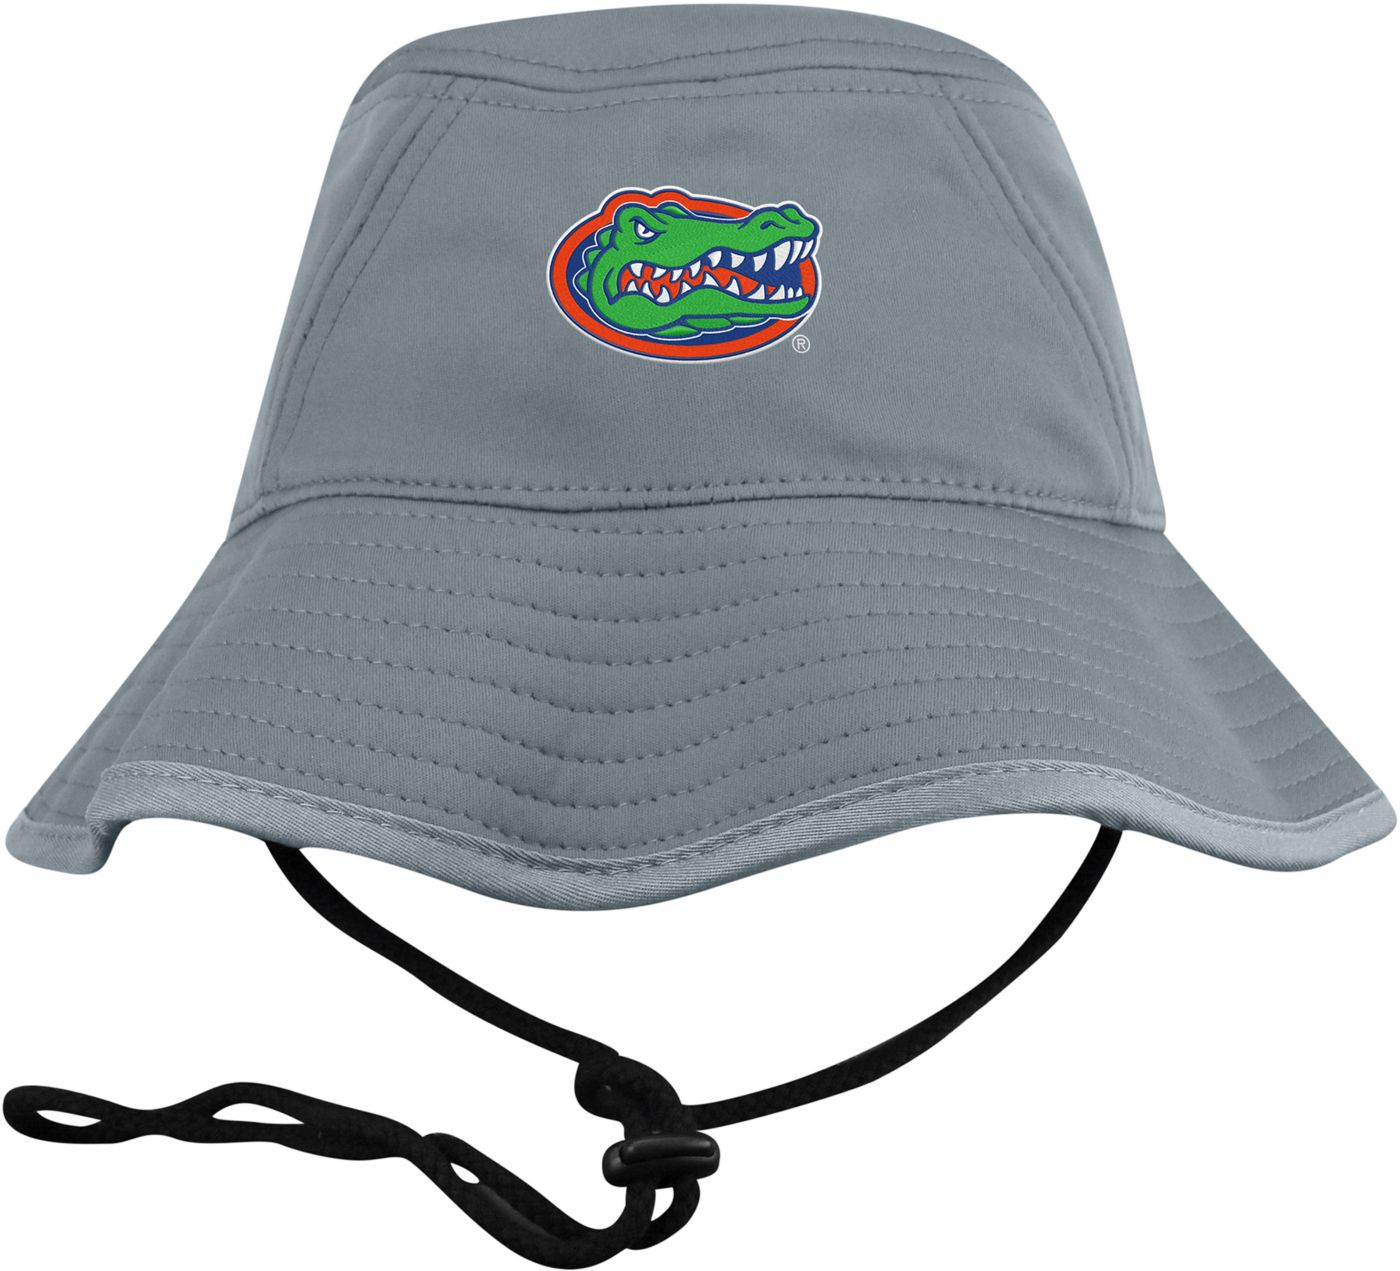 Top of the World Men's Florida Gators Grey Bucket Hat